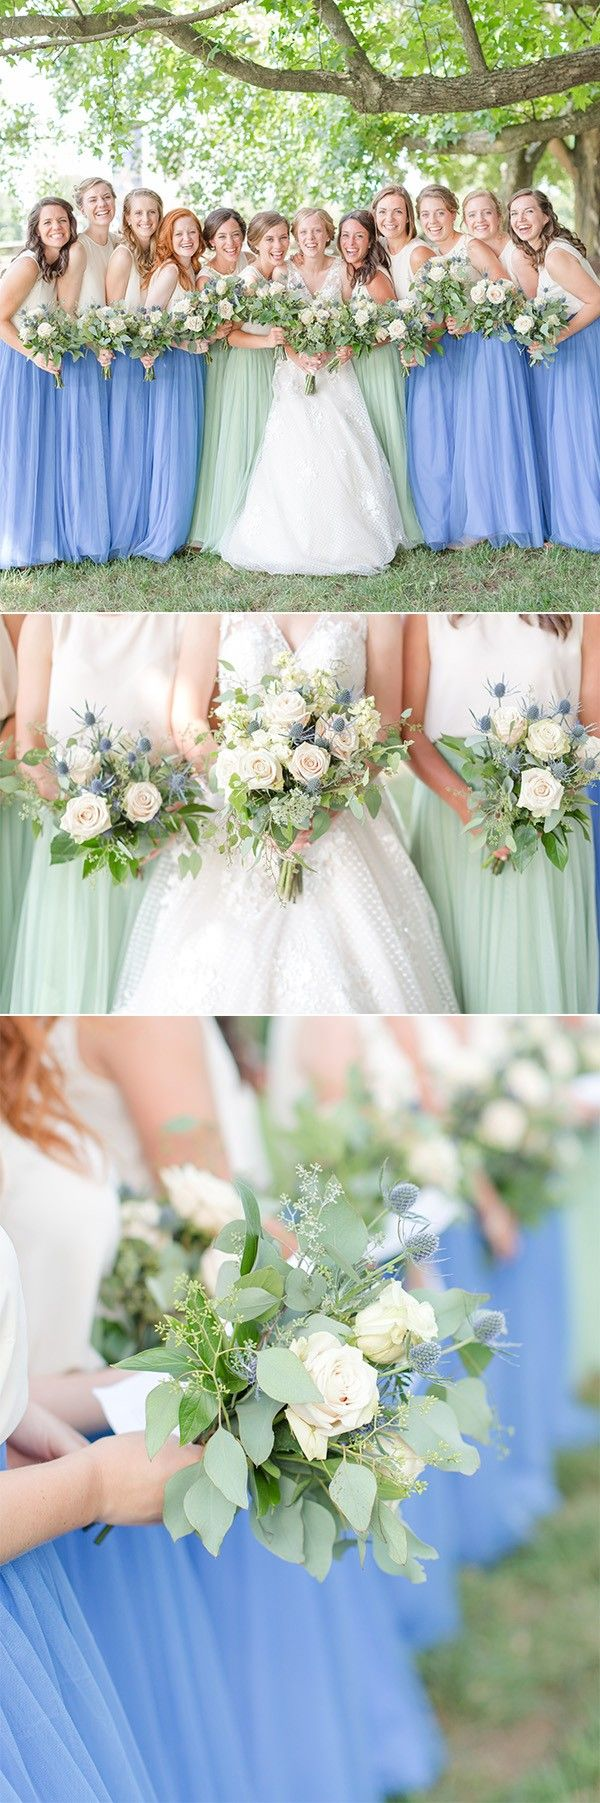 blue and green mismatched bridesmaid dresses